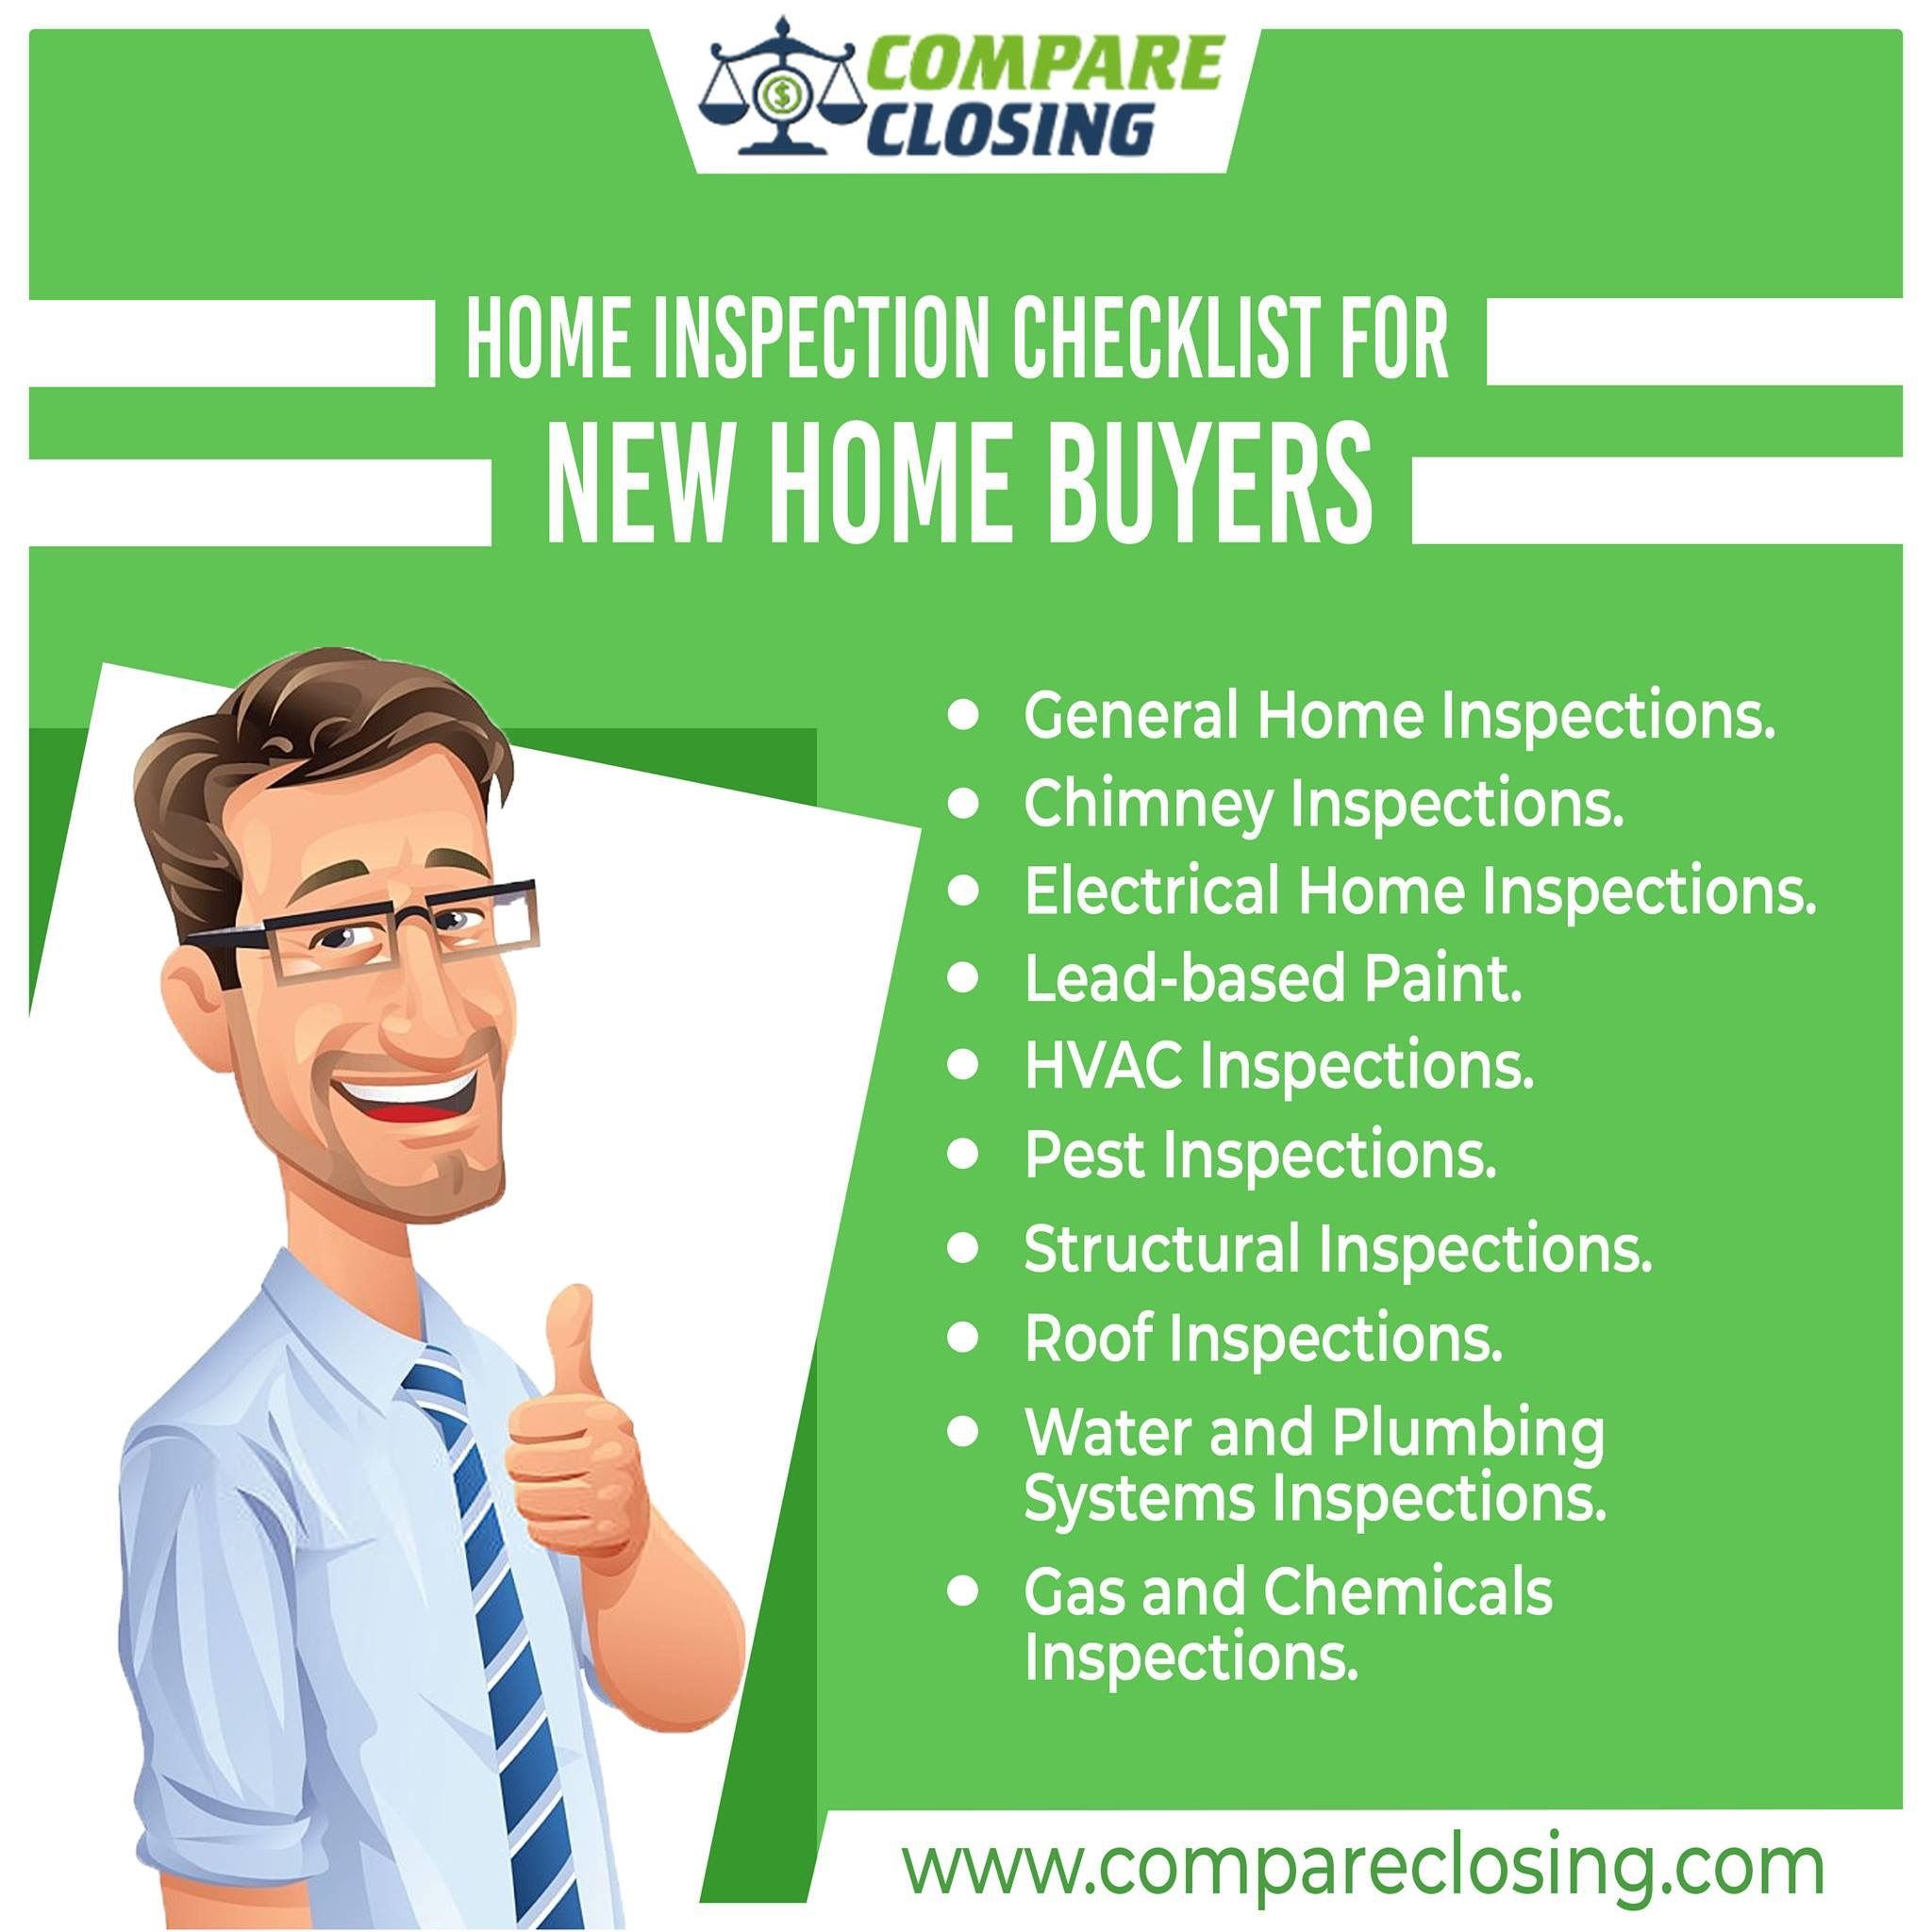 Home Inspection Checklist. in 2020 Inspection checklist